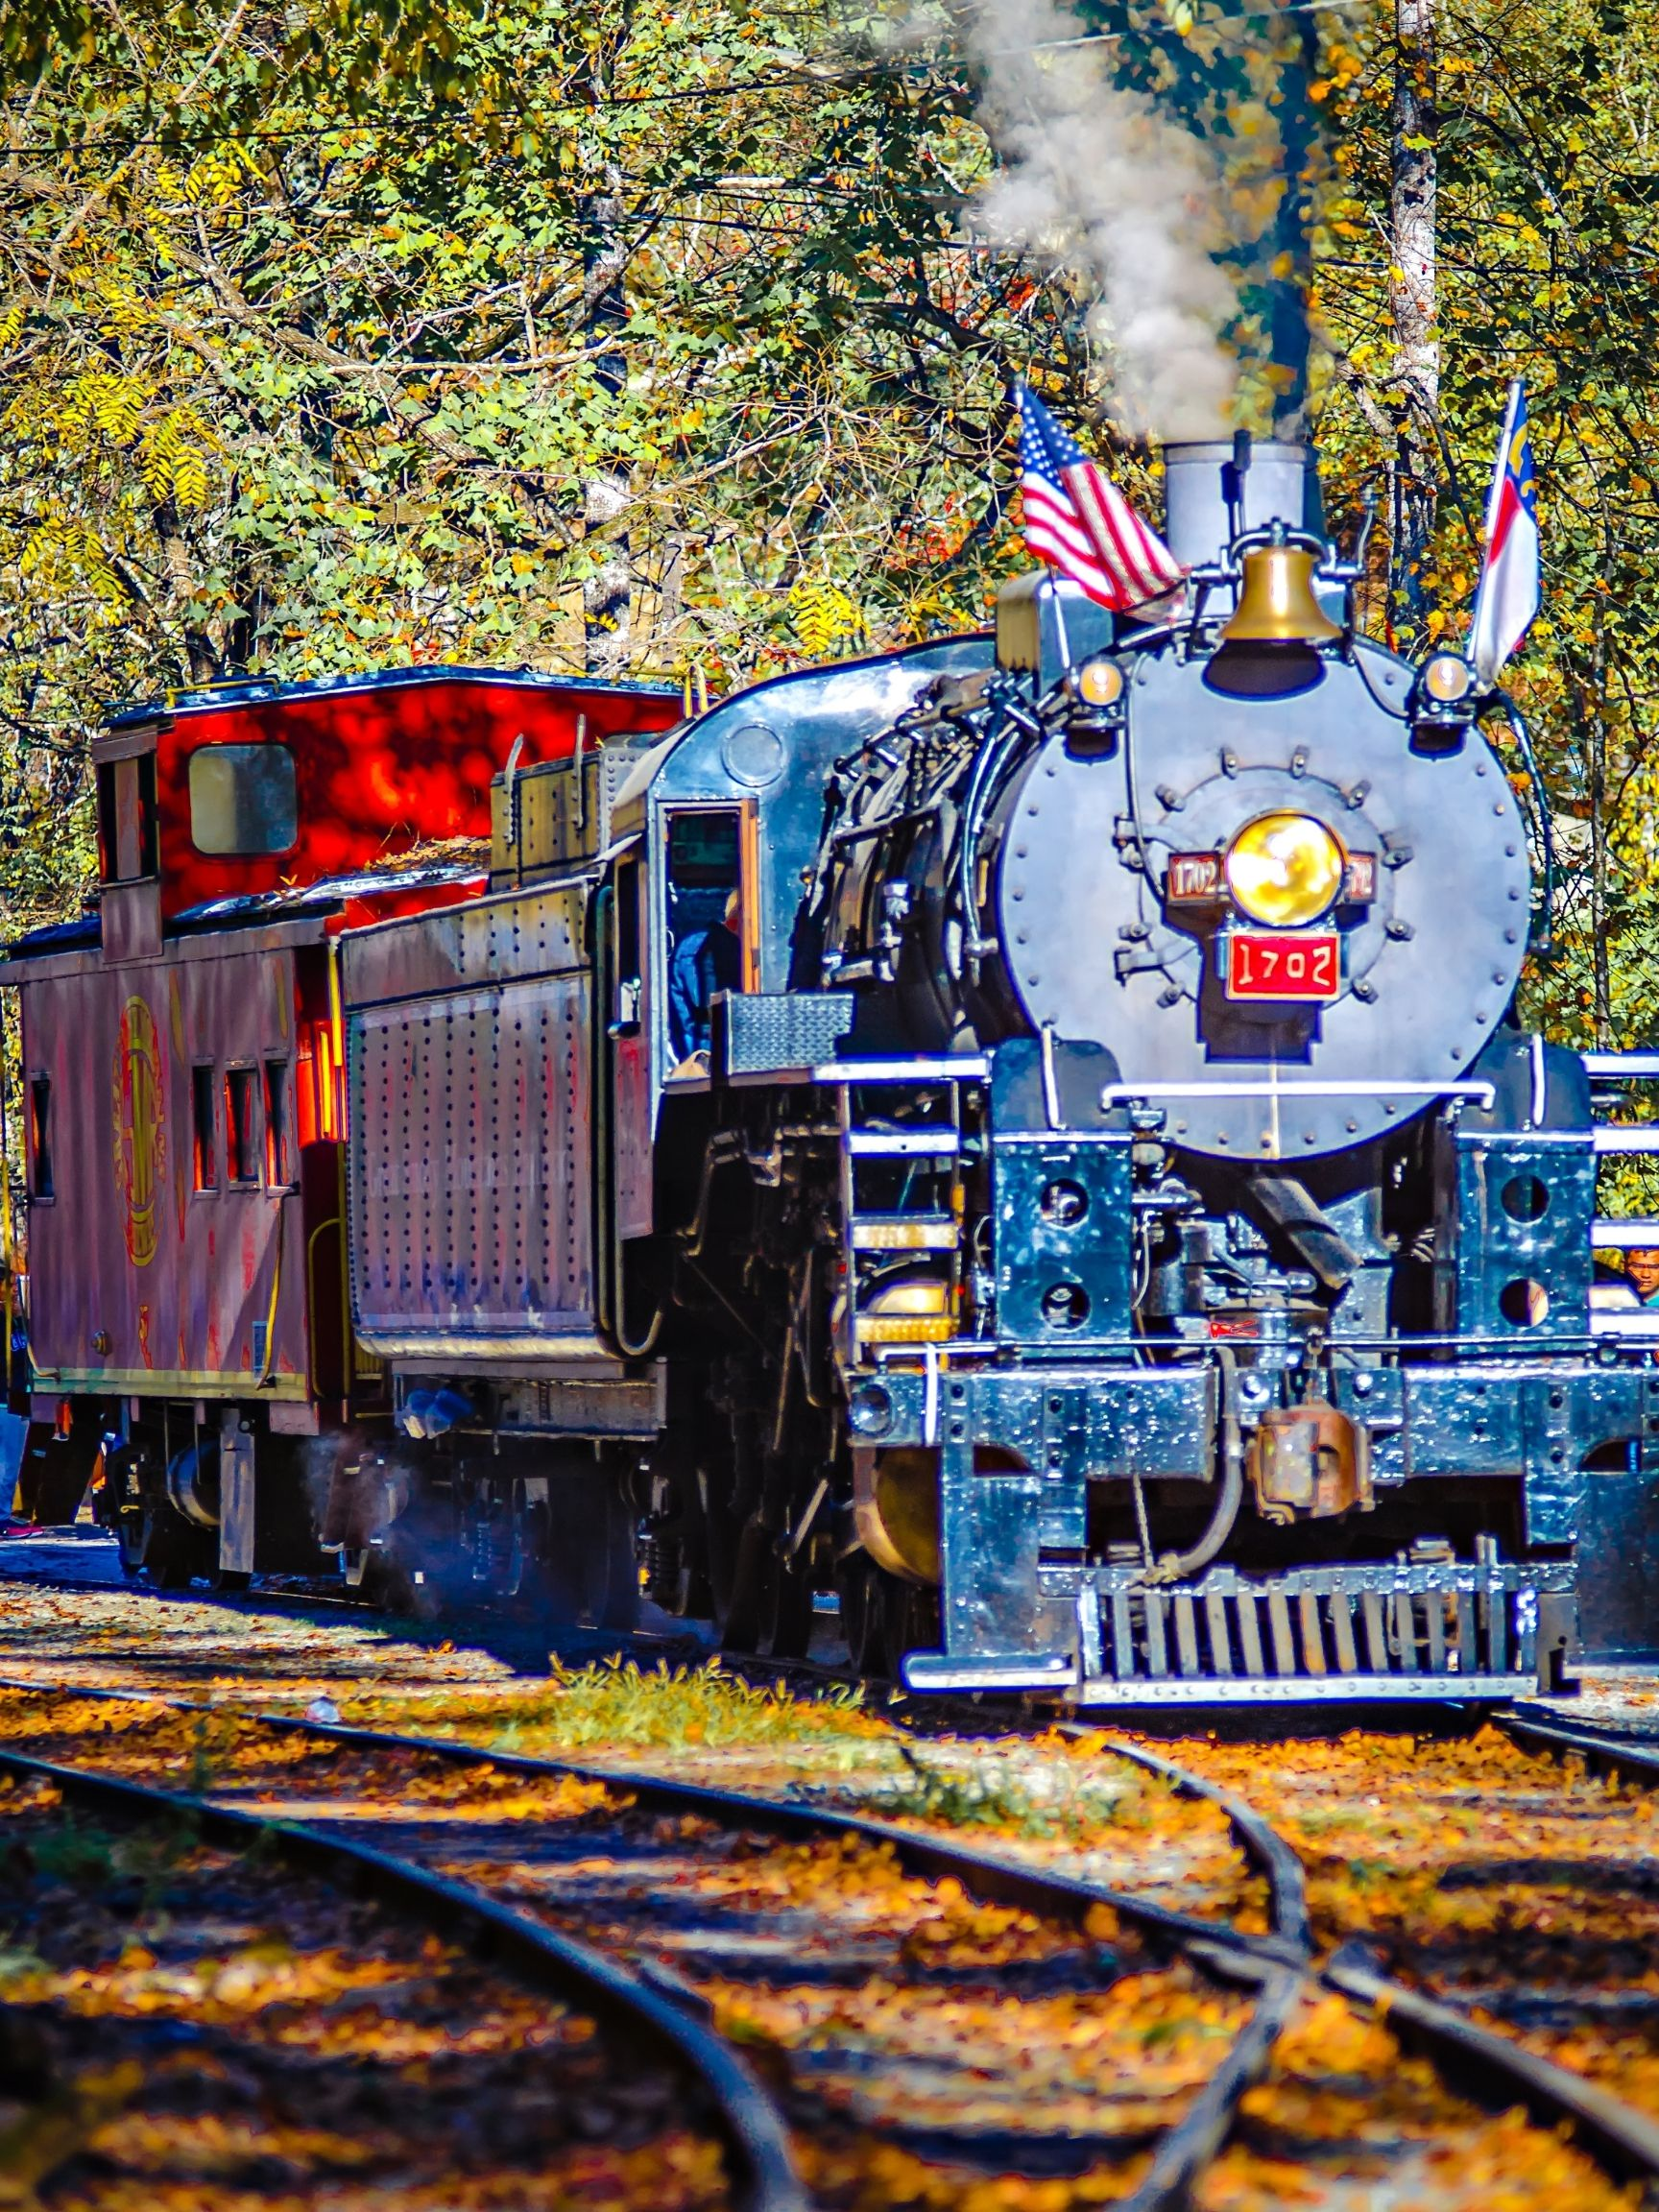 The Great Smoky Mountains Train One many great things to do in North Carolina